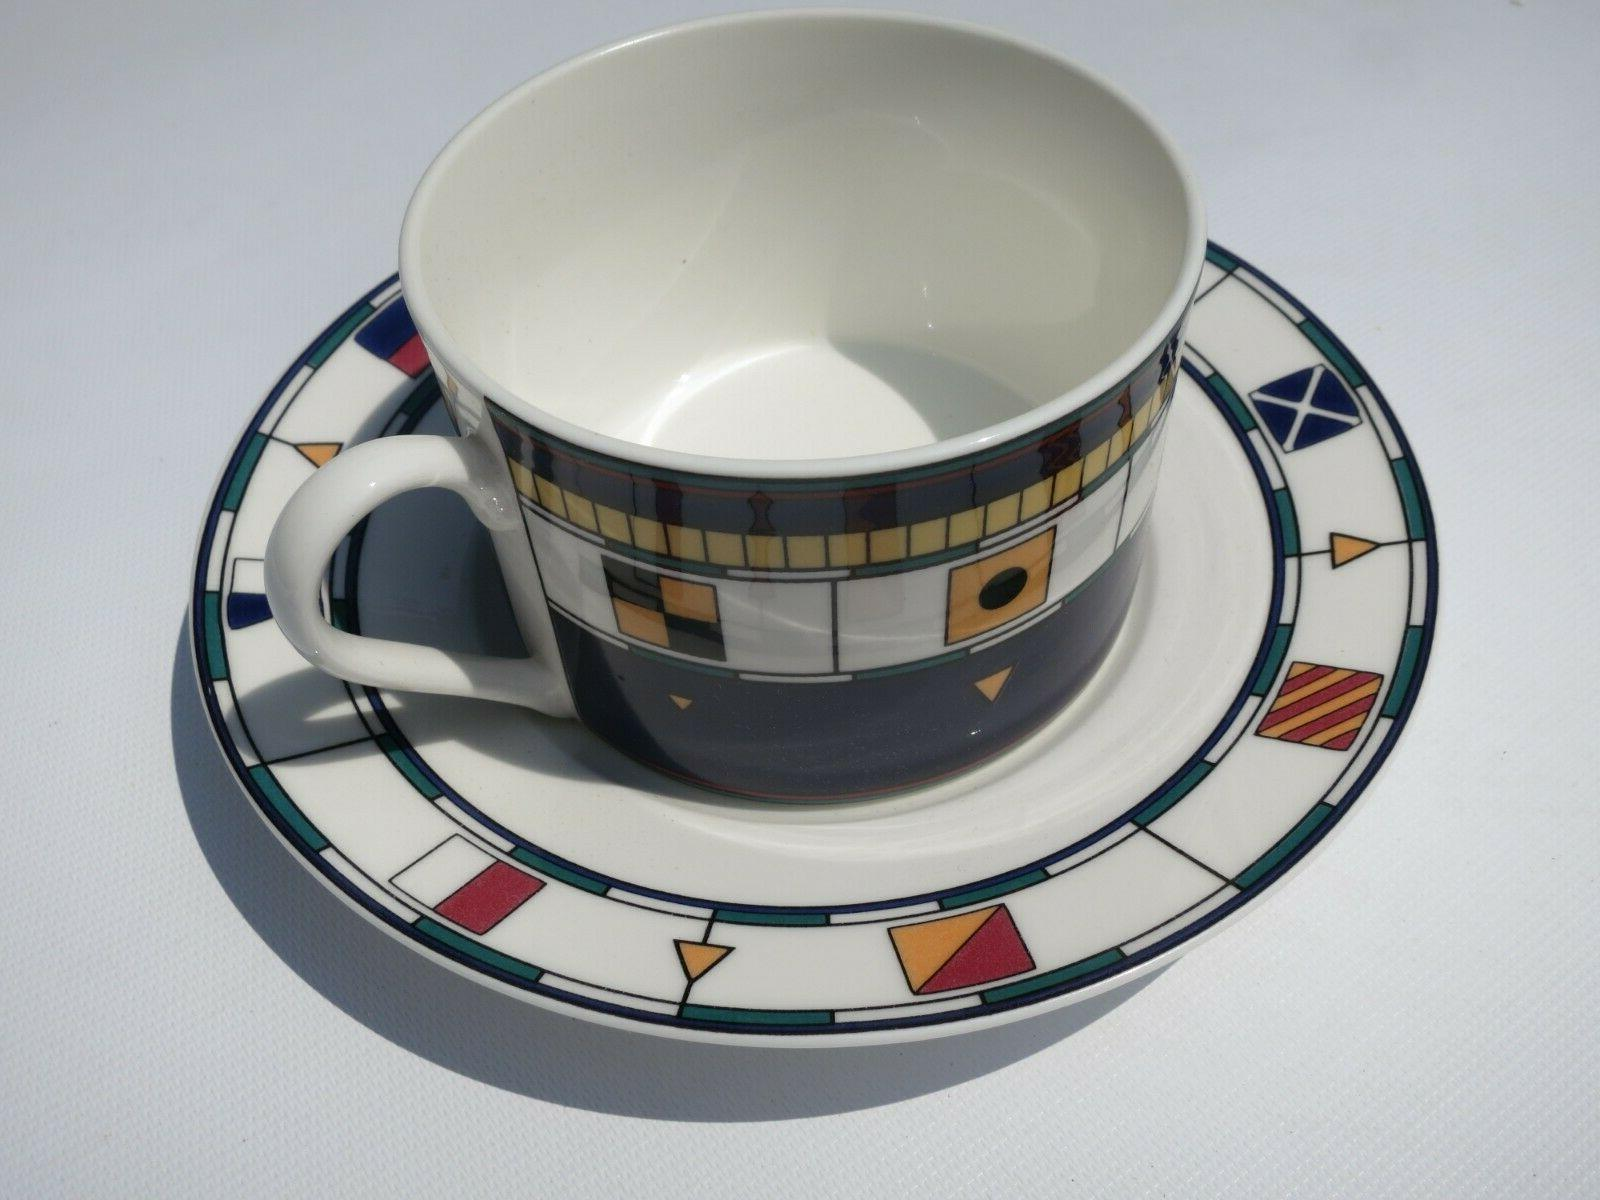 New! Sango Anchors Porcelain Dinnerware